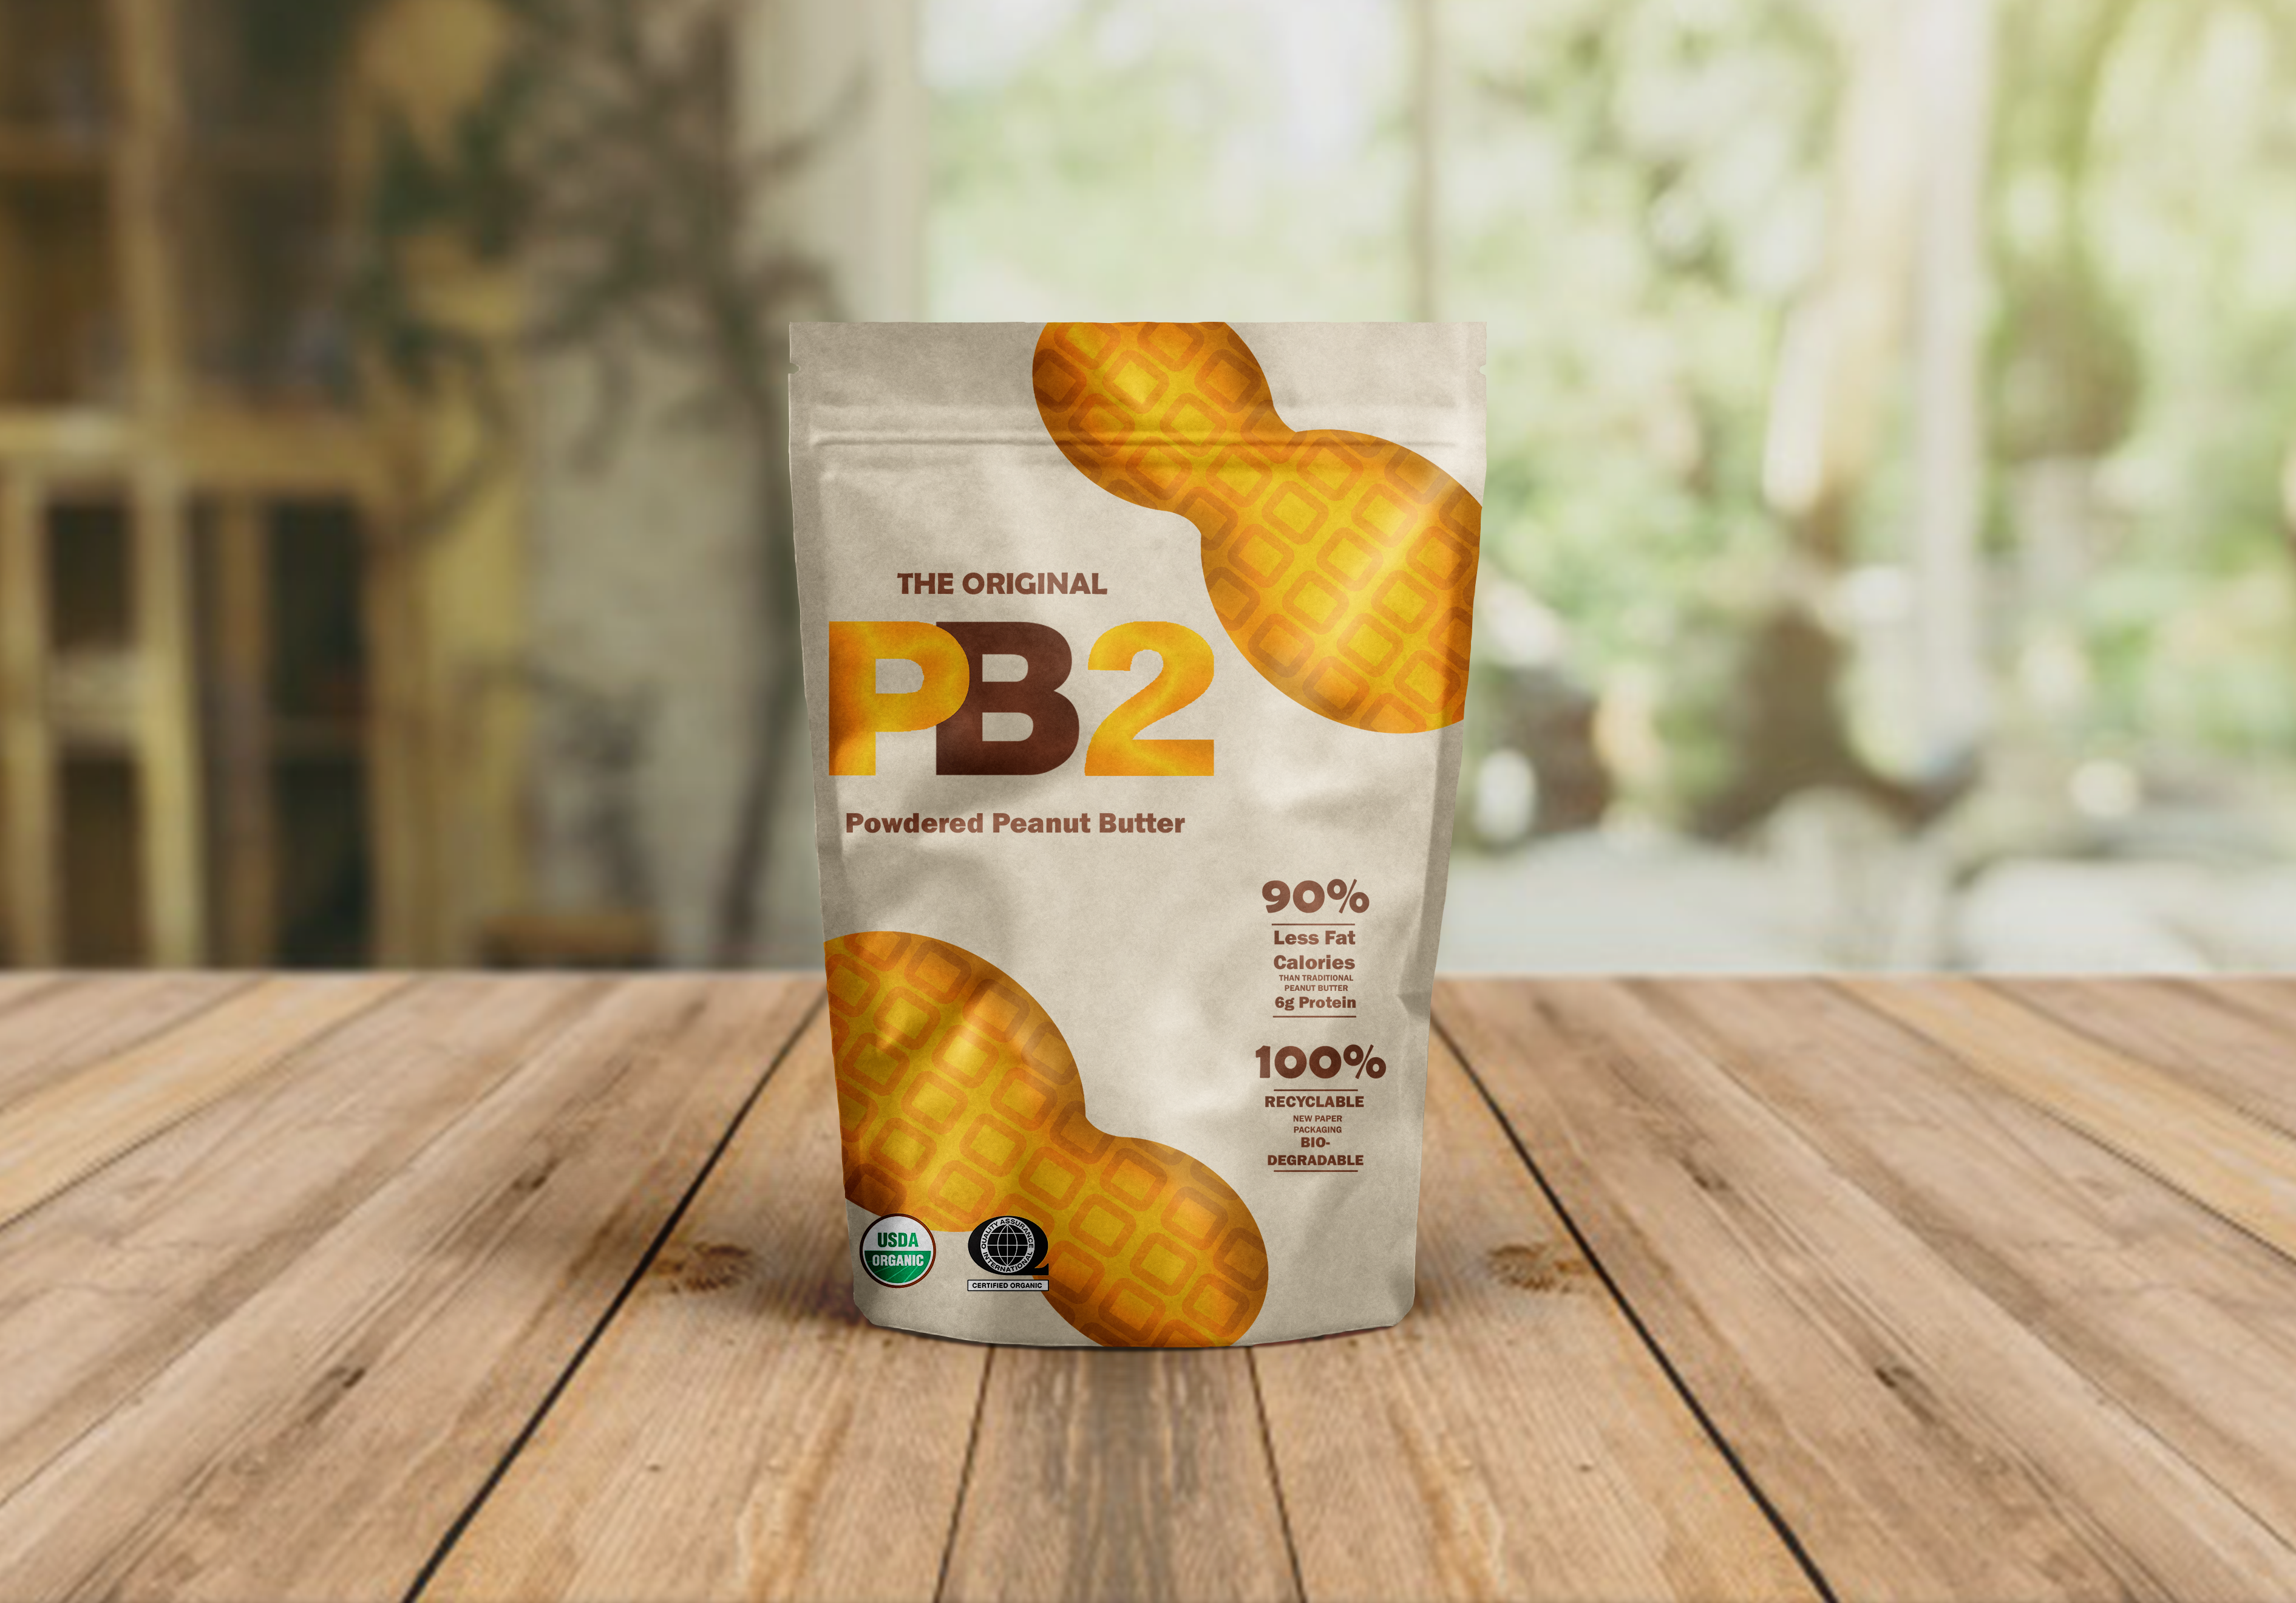 http://PB2%20Sustainable%20Packaging